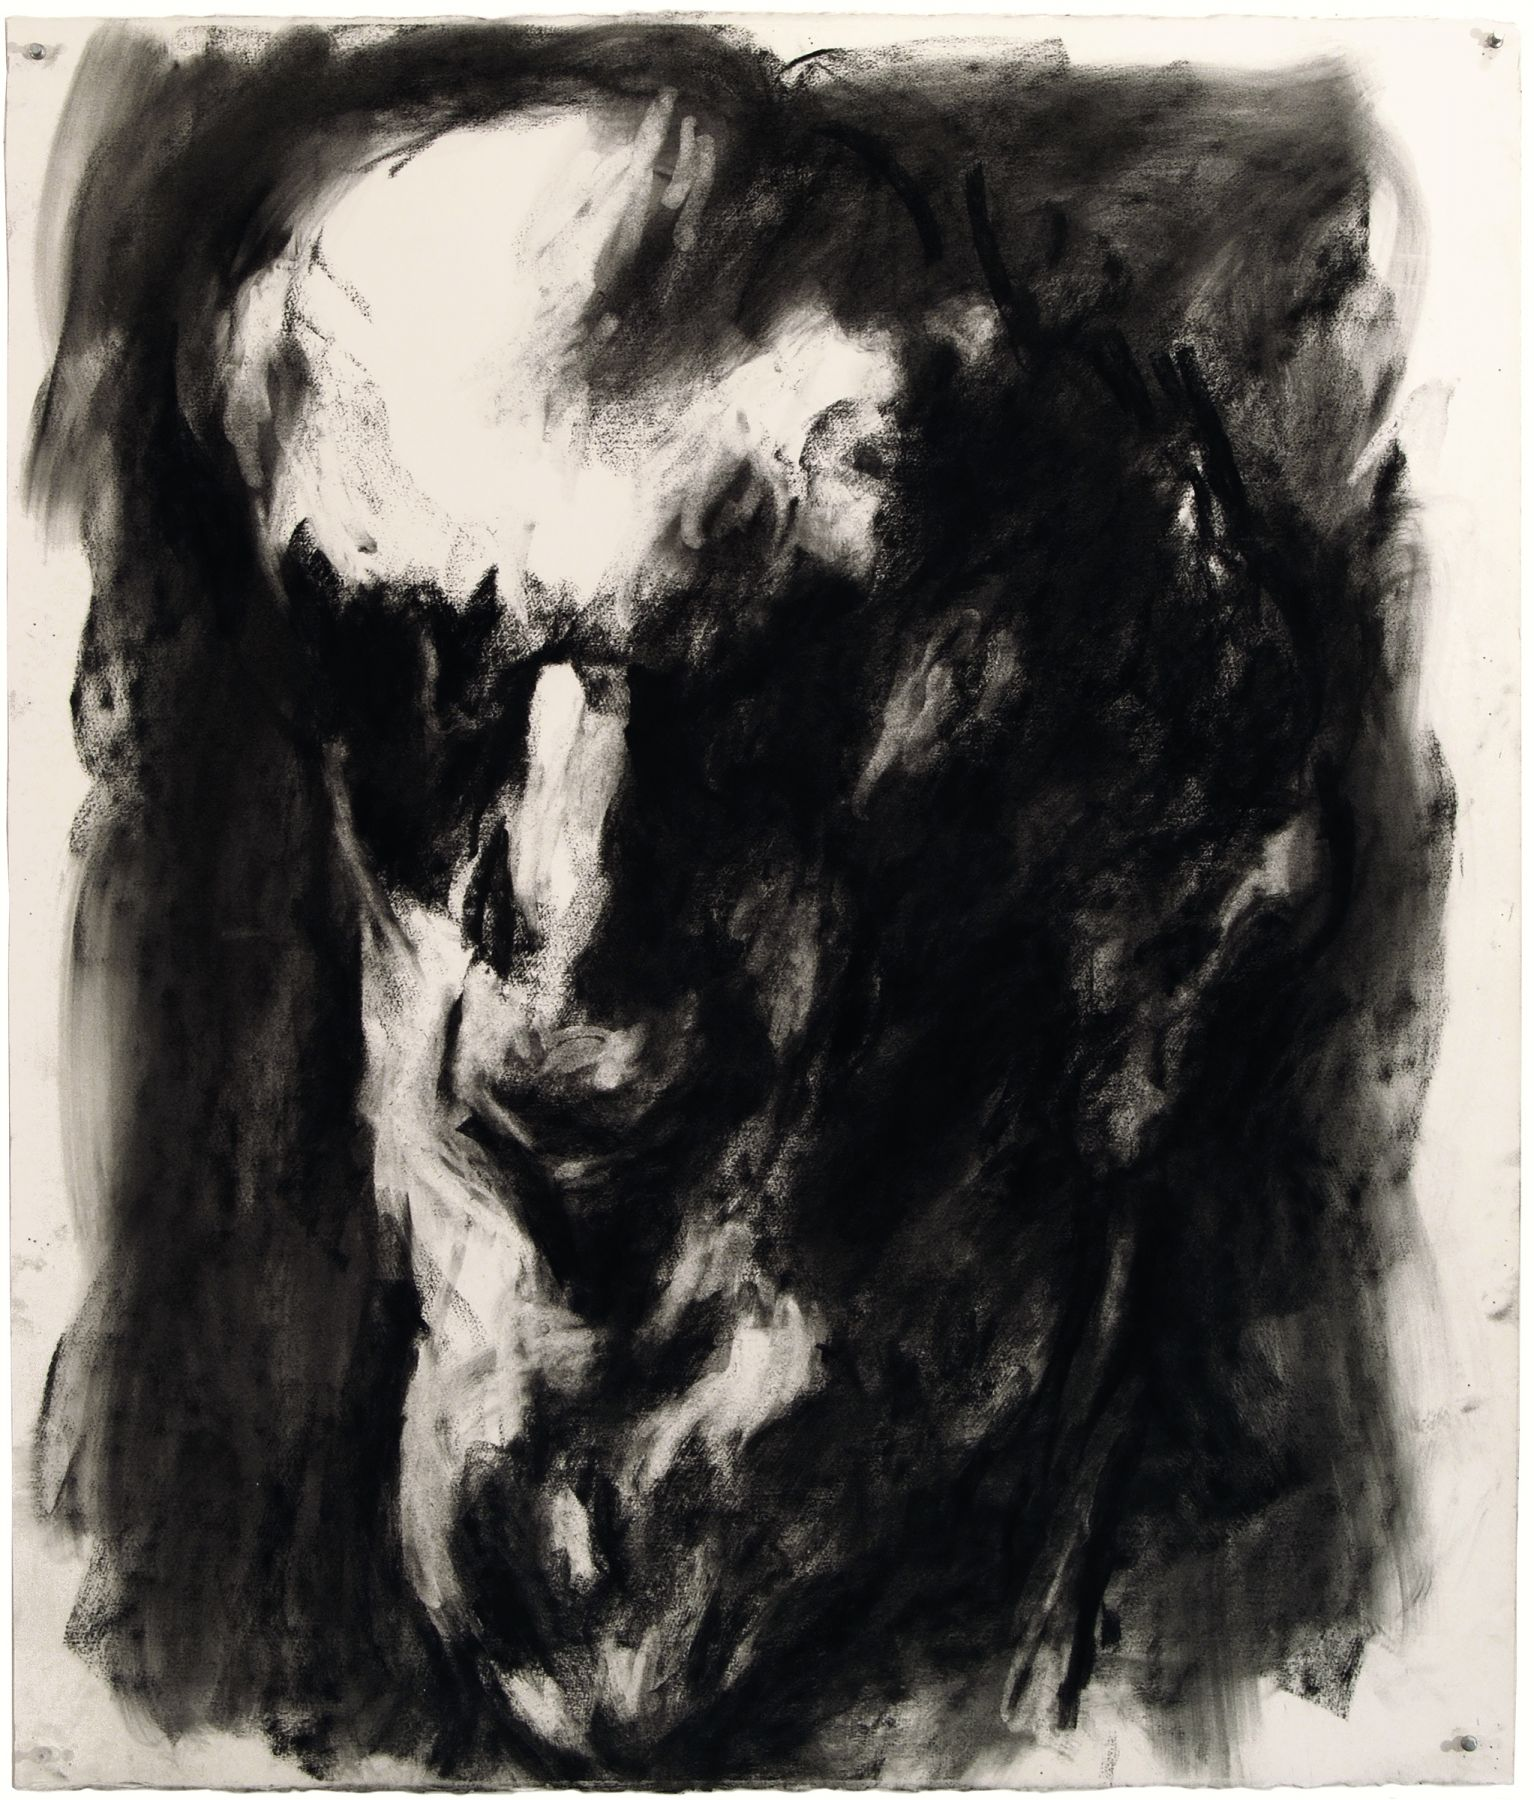 Musician, 1998, charcoal on paper, 42.25 x 36 in.